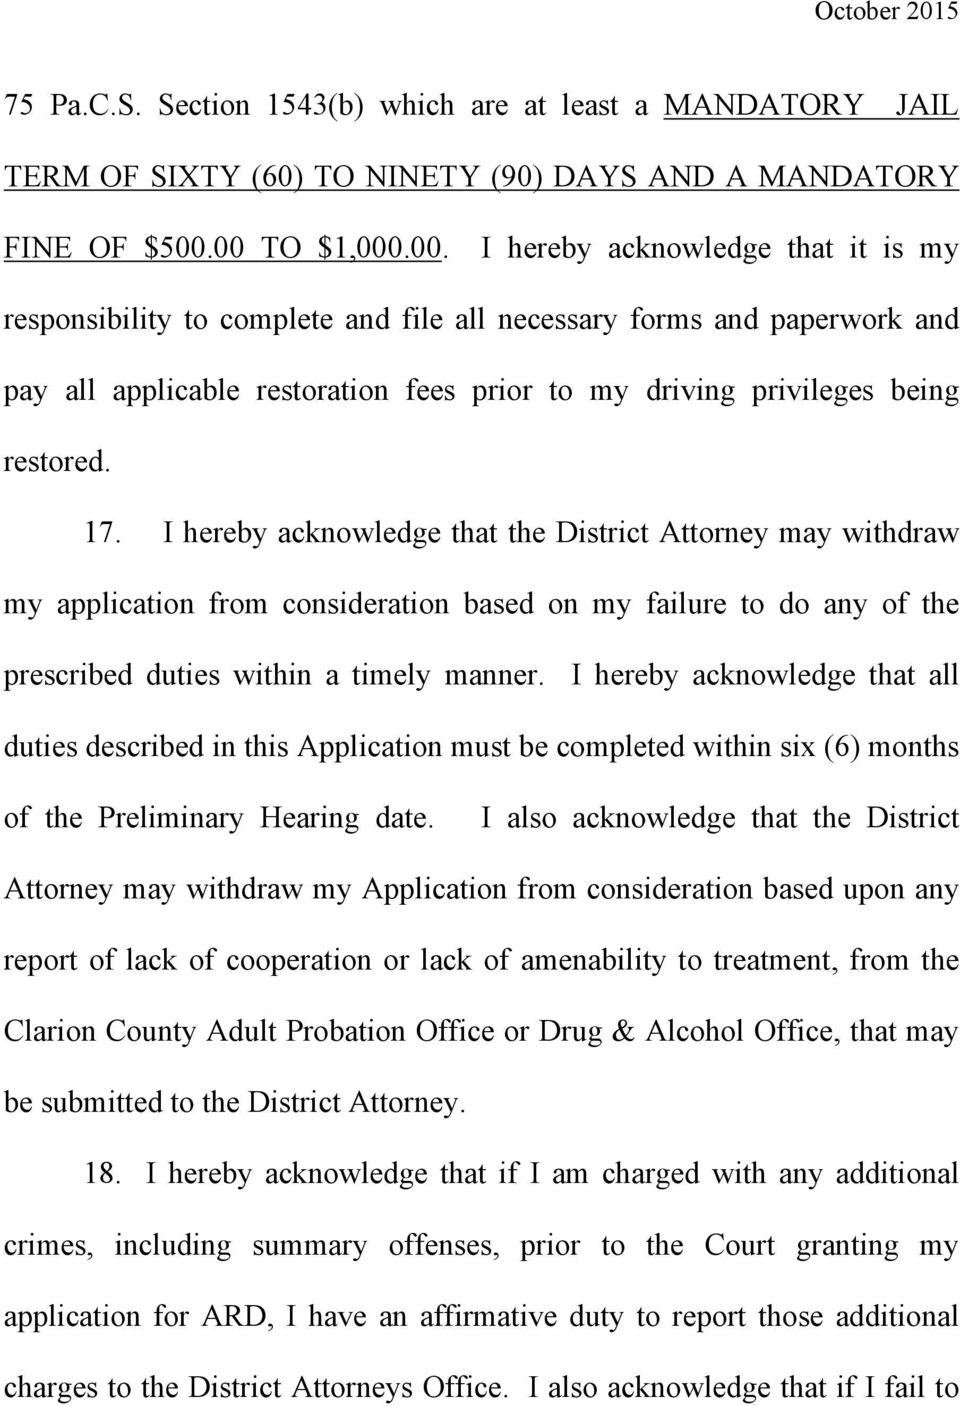 17. I hereby acknowledge that the District Attorney may withdraw my application from consideration based on my failure to do any of the prescribed duties within a timely manner.